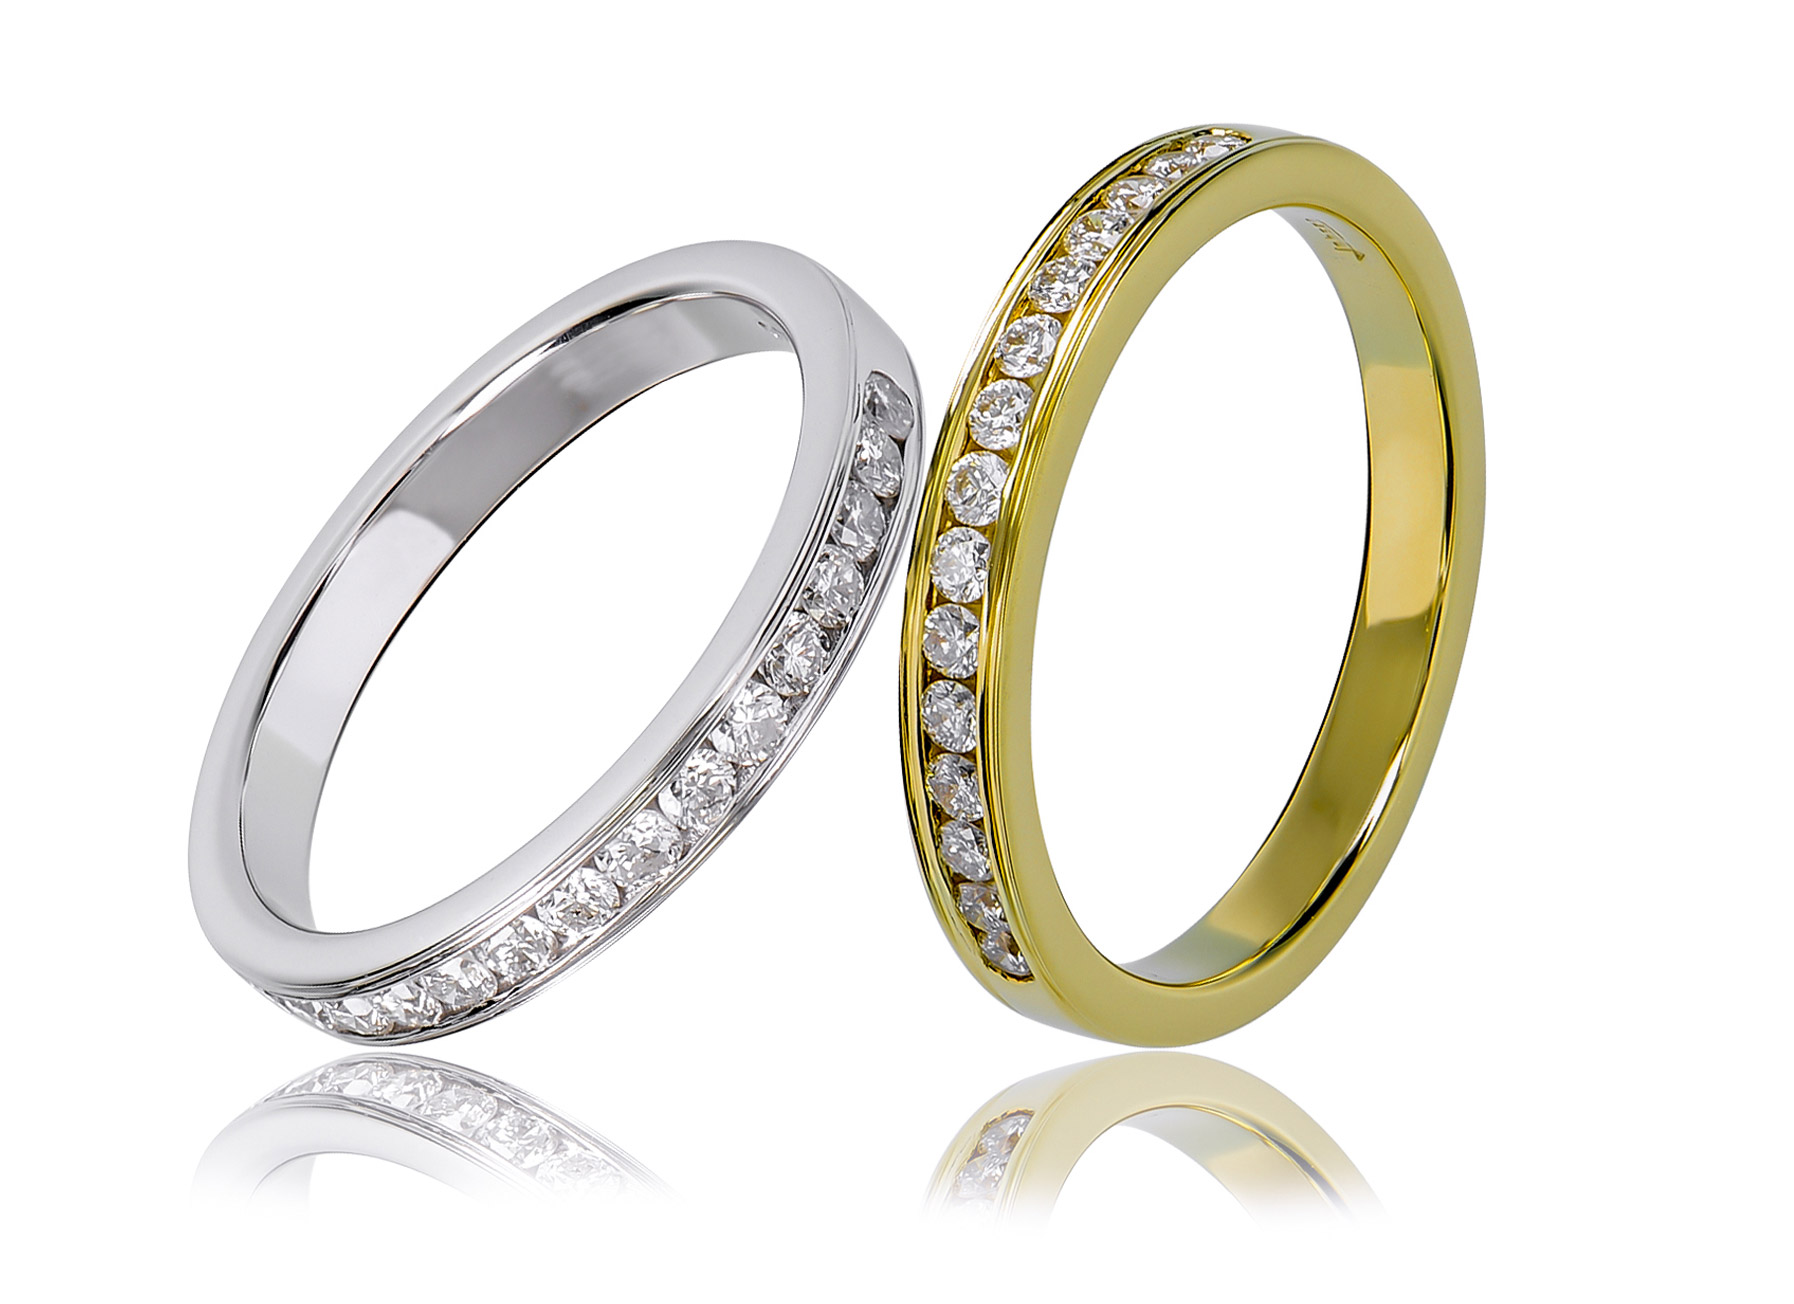 baccio ring archives georgini two product jdc category jewellers set rings wedding jewellery tone channel